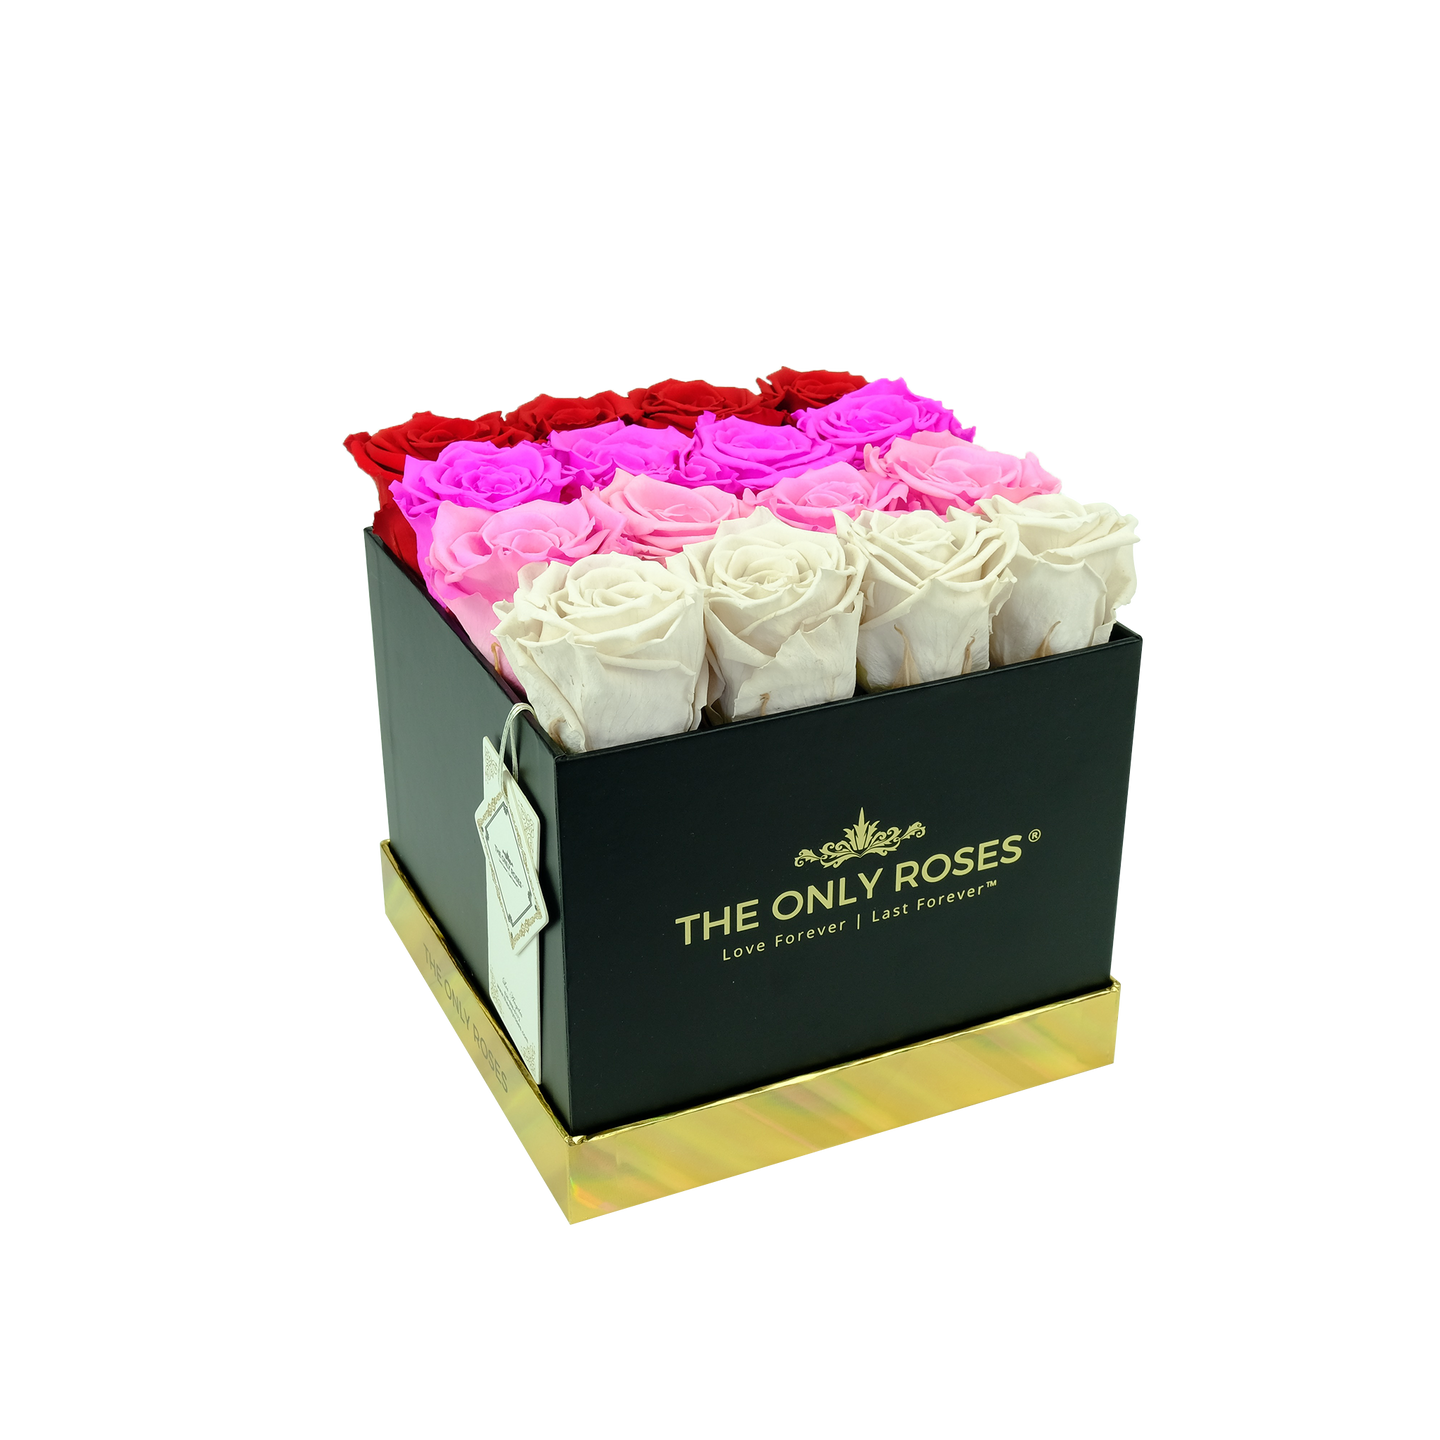 Fading Color Preserved Roses | Square Black Huggy Rose Box - The Only Roses